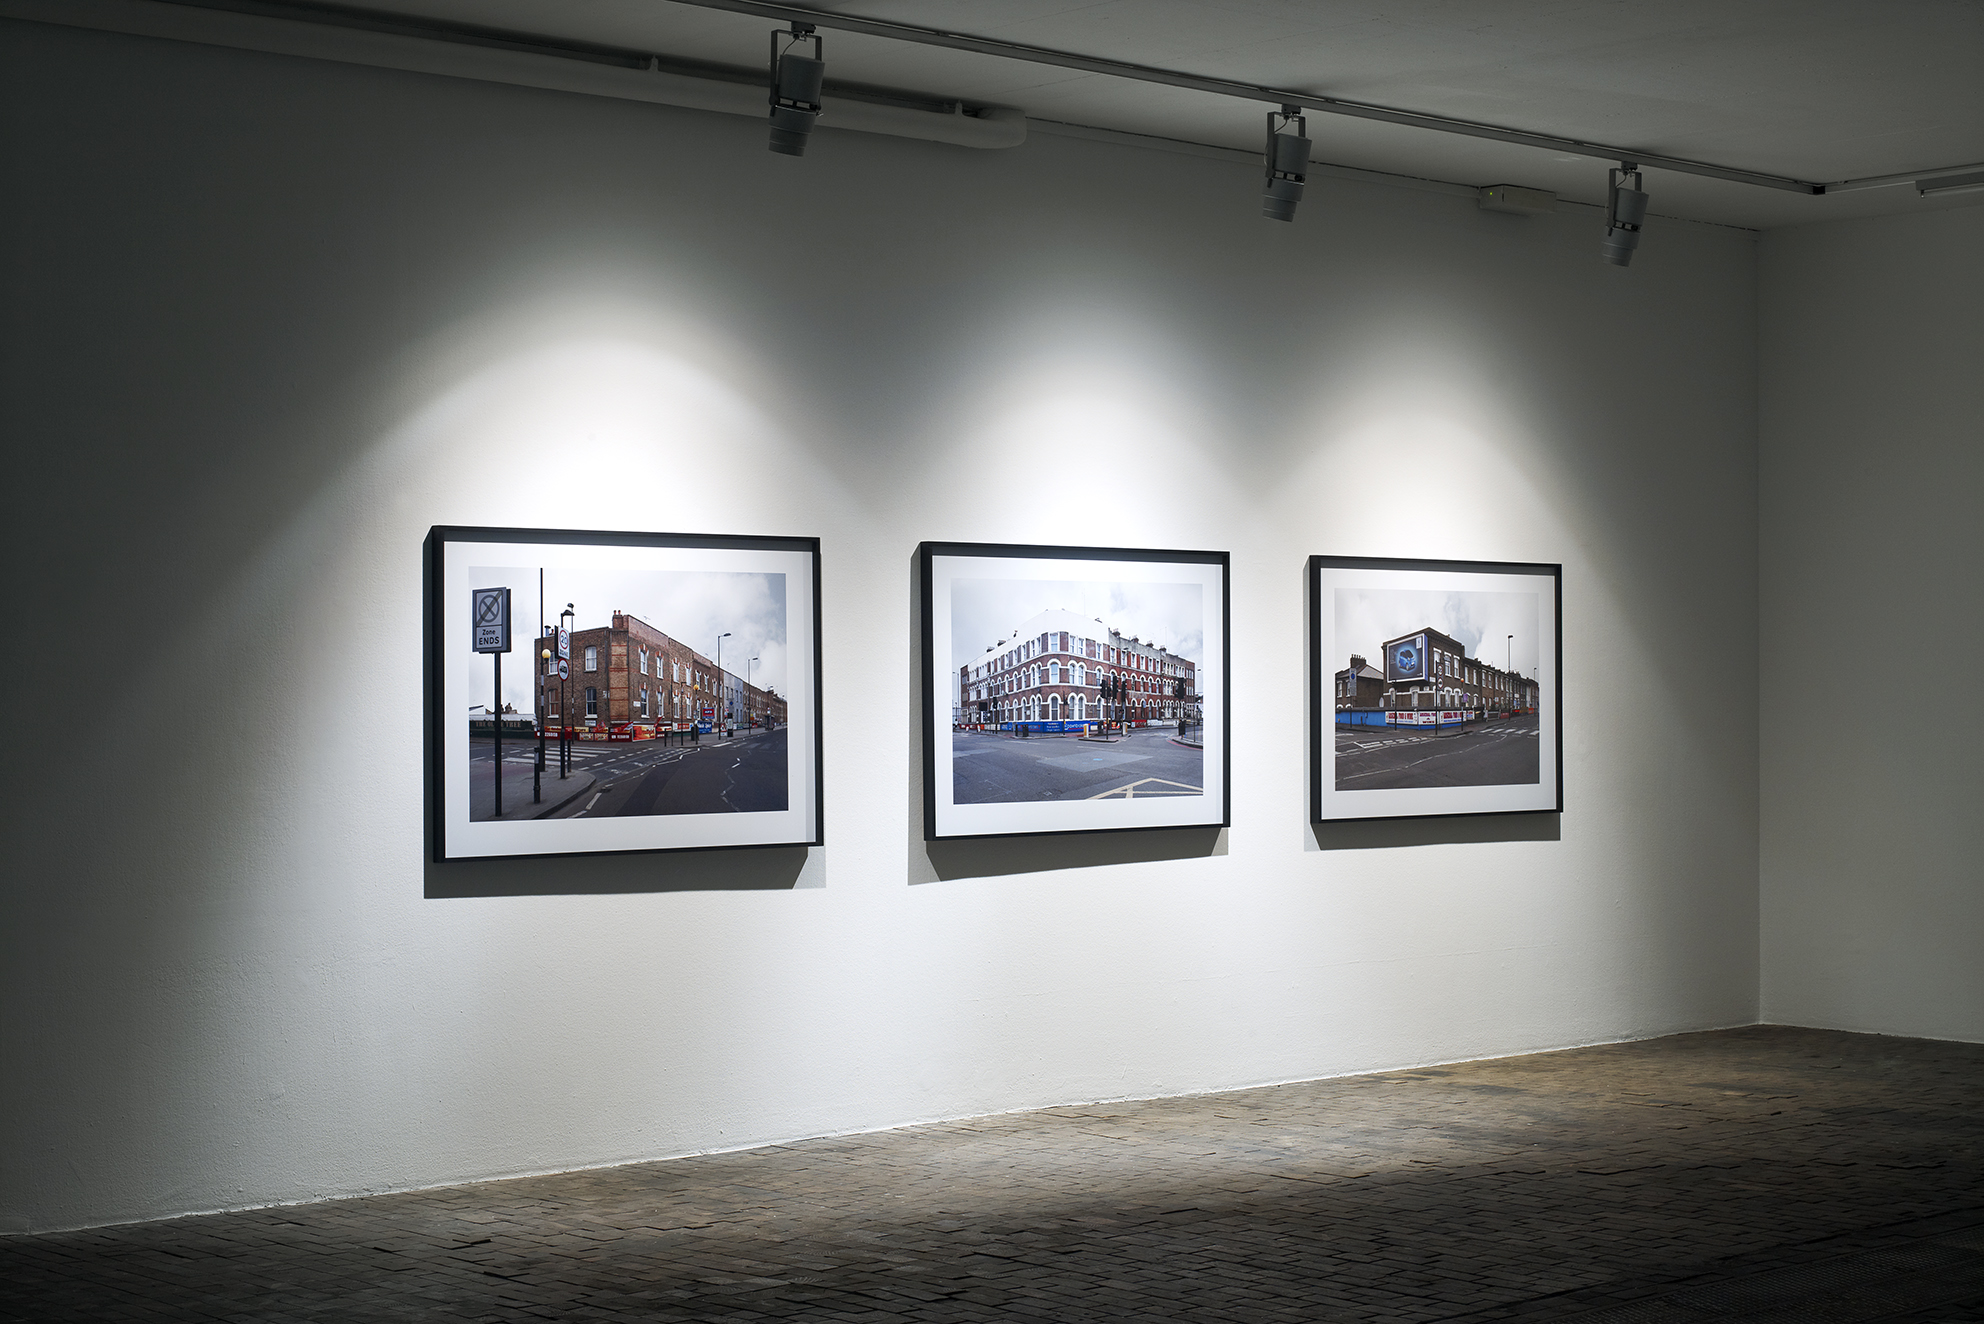 Finsbury, Blackstock Road, London, series of 3 photographs, inkjet print / black wooden frame and glass, 104 x 150 x 4 cm, 2011, © David Gagnebin-de bons